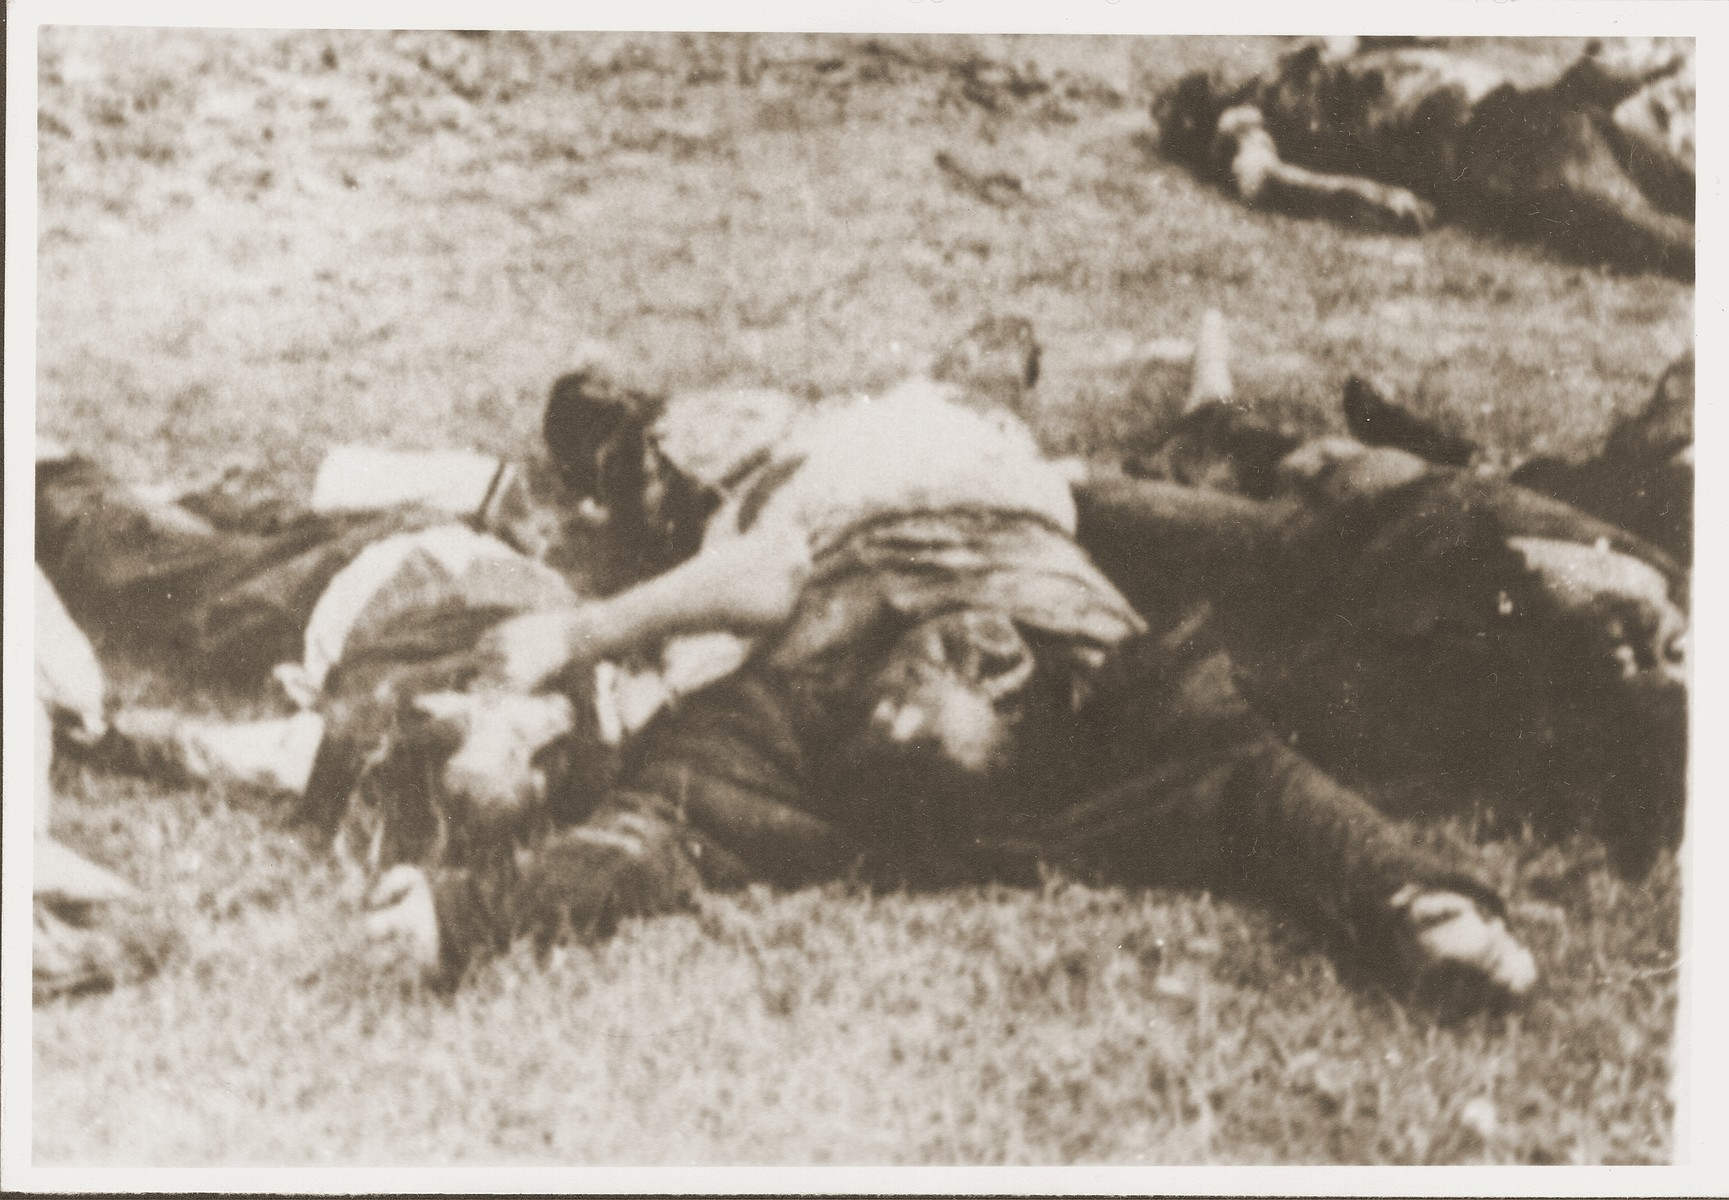 The bodies of Jews removed from the Iasi death train during a stop on the journey, lie beside the tracks.